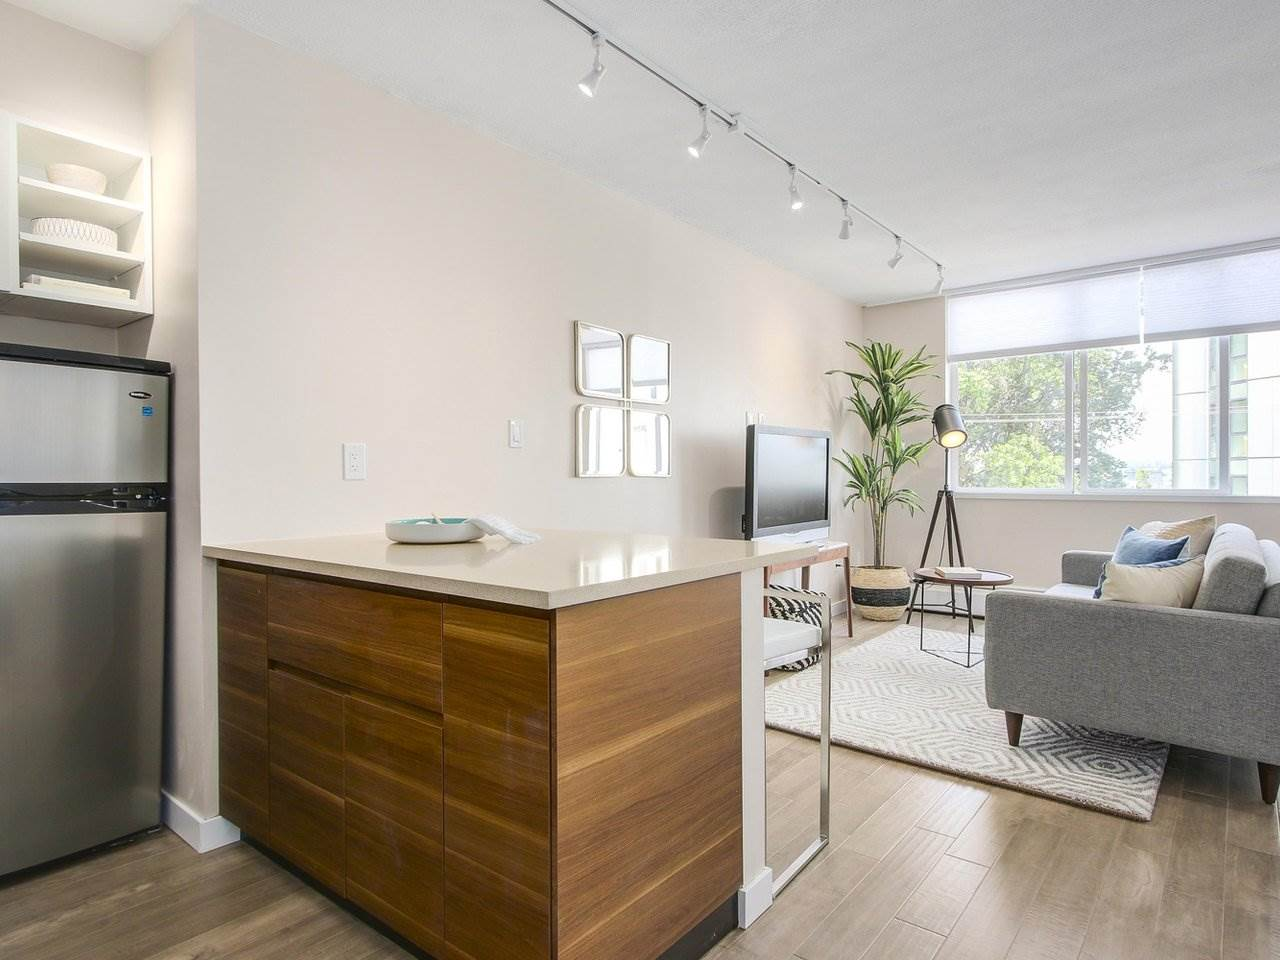 Condo Apartment at 308 1250 BURNABY STREET, Unit 308, Vancouver West, British Columbia. Image 1